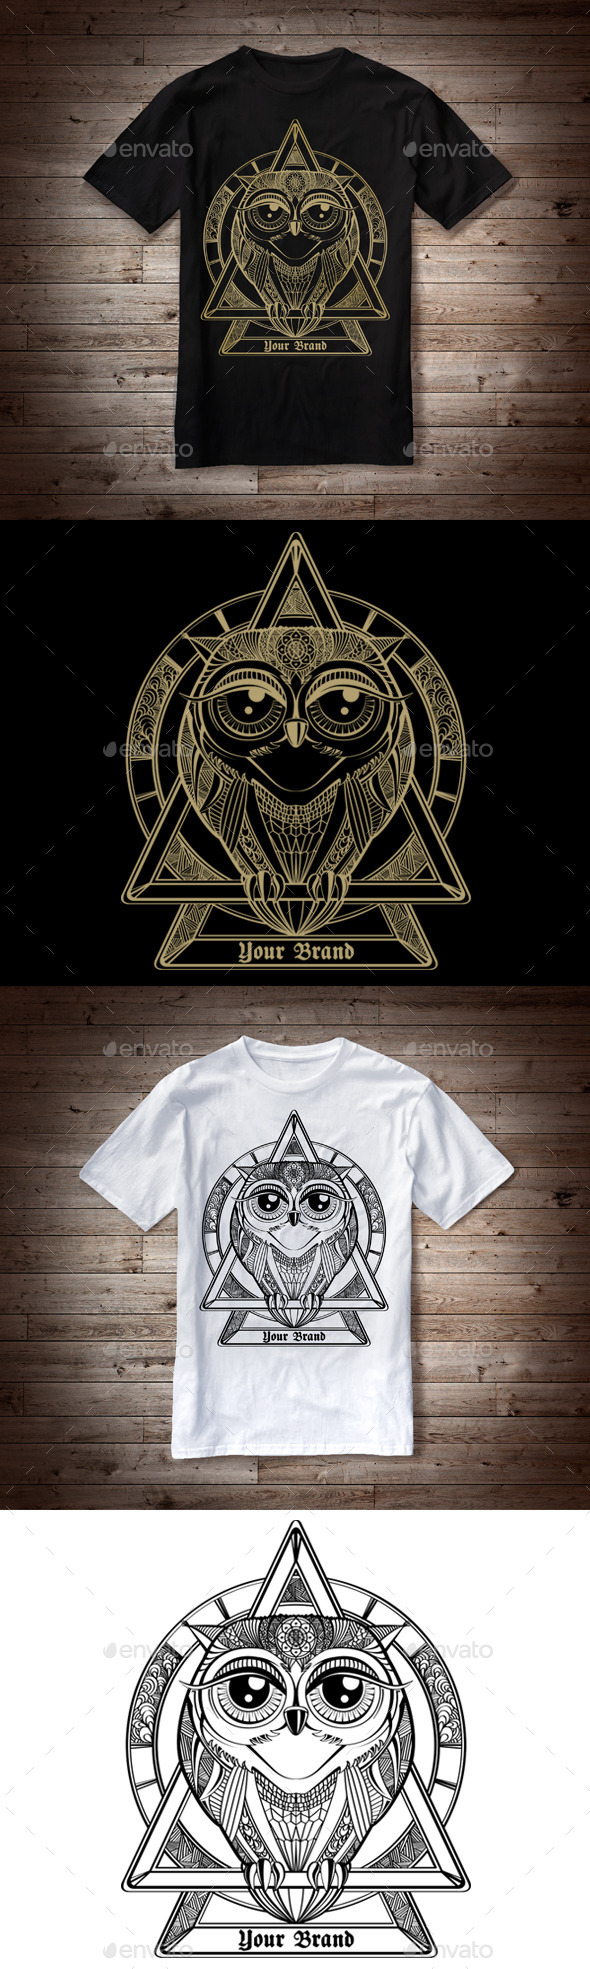 GraphicRiver T-Shirt Illustration Owl Theme 10143443